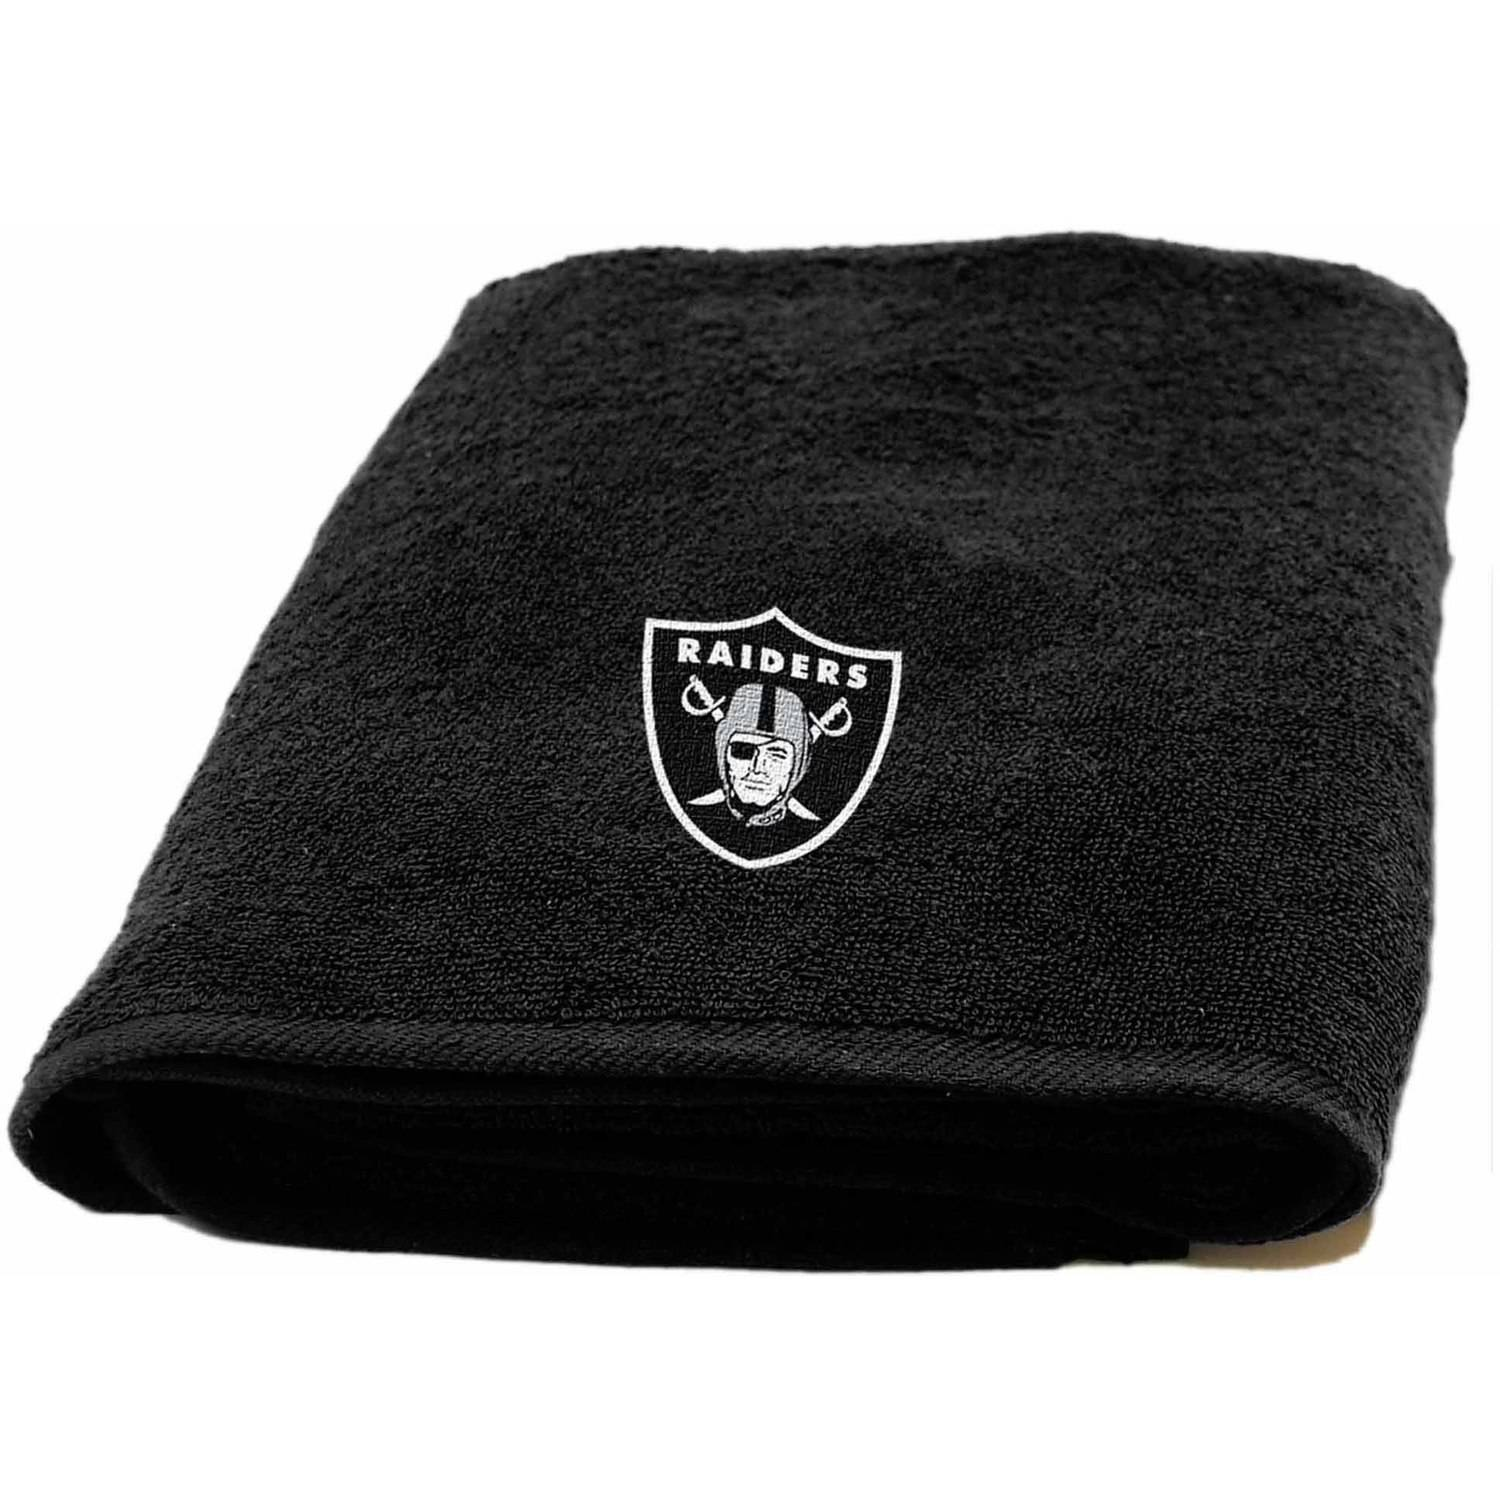 NFL Oakland Raiders Decorative Bath Collection - Bath Towel